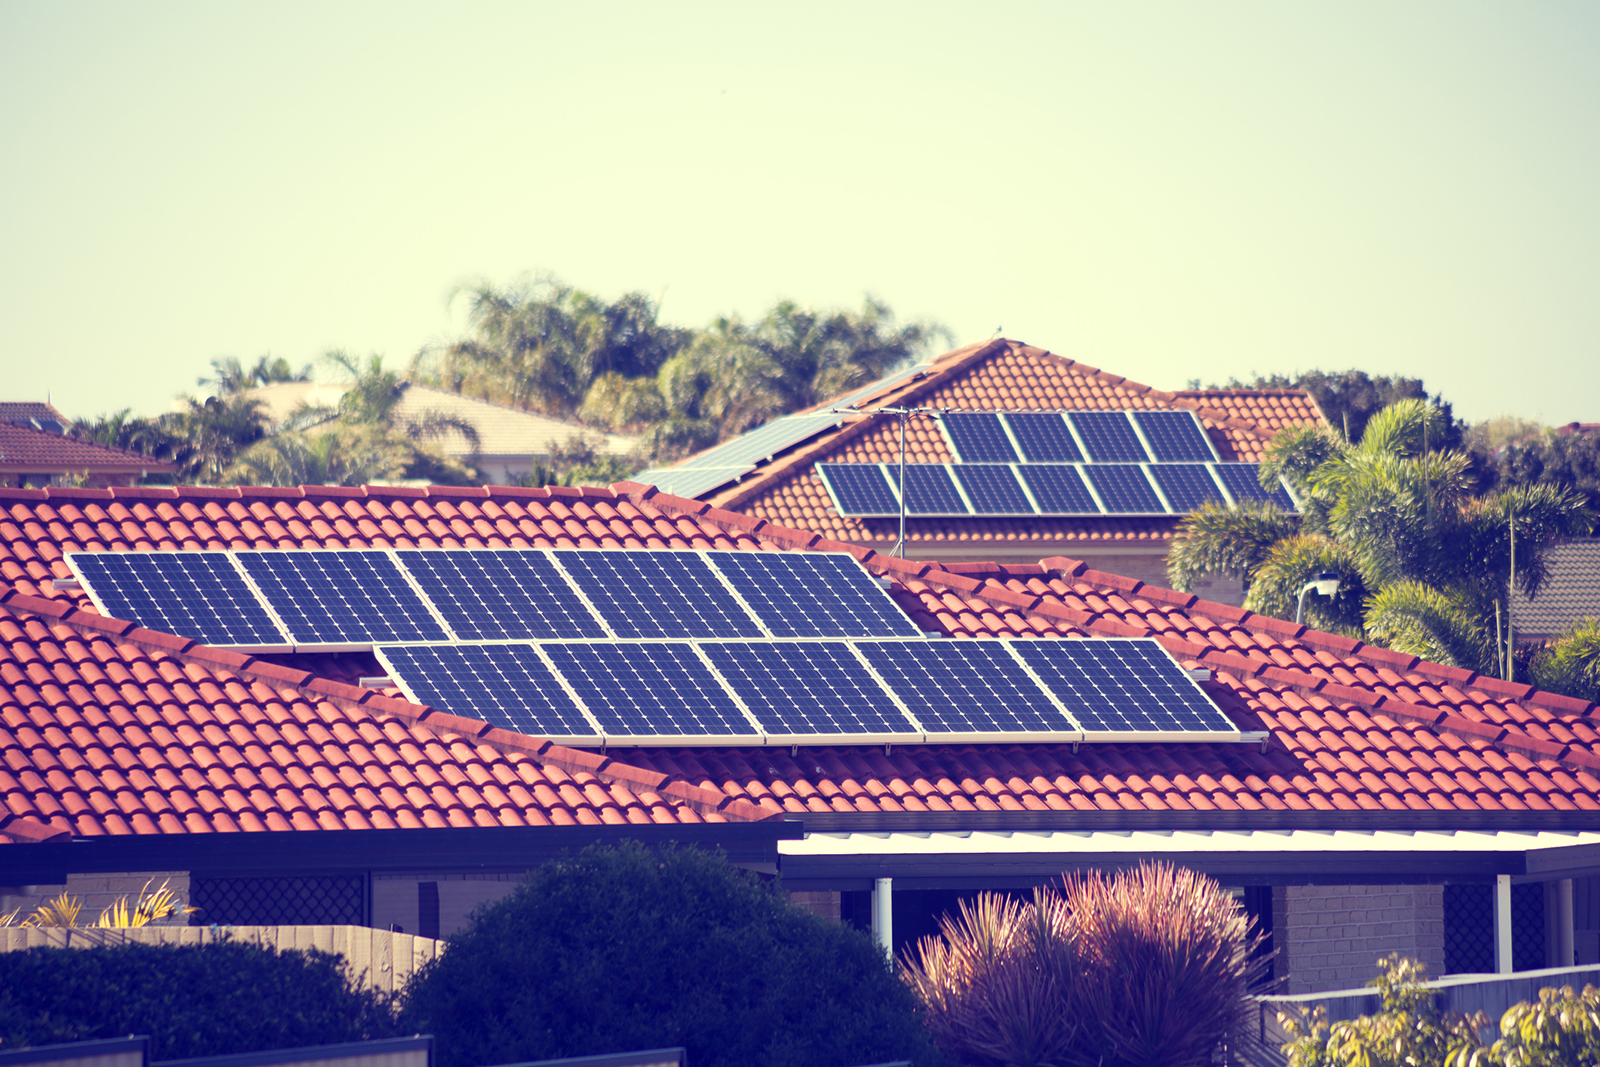 Rooftop solar panels in Australia